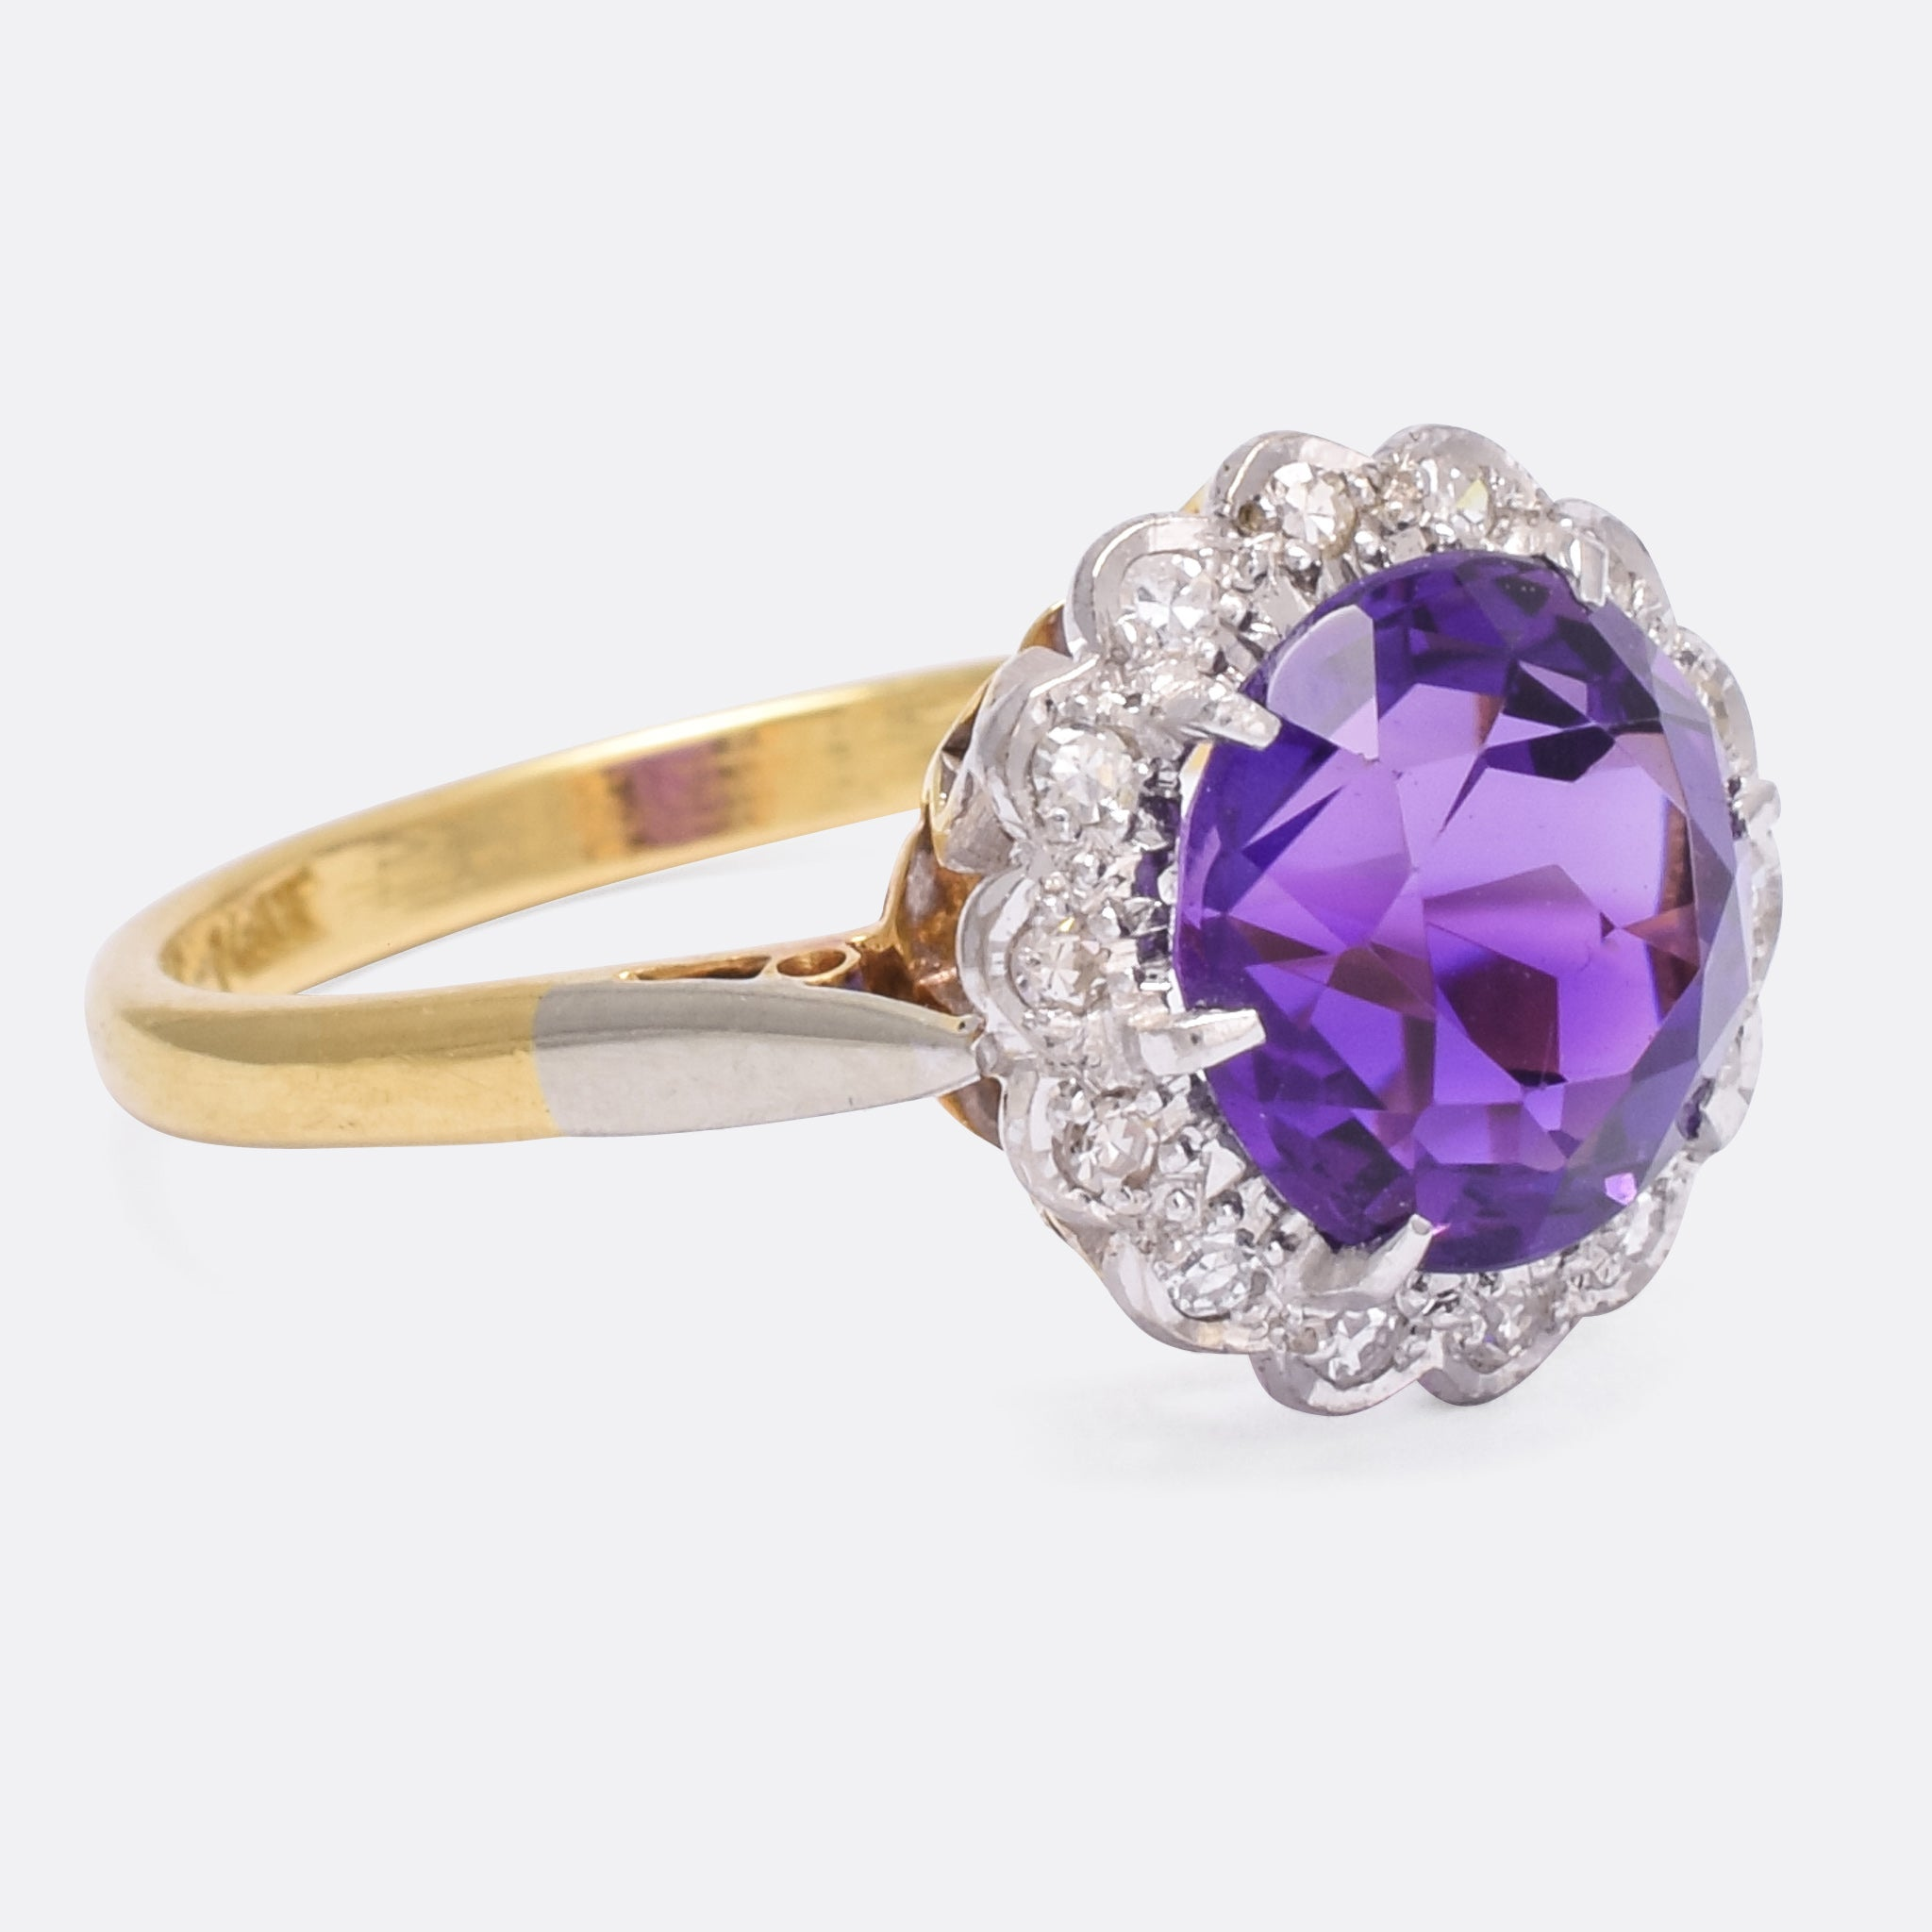 rings amethist collection the jewellery products contemporary loinnir amethyst ring shrubbery engagement plated silver irish gold online